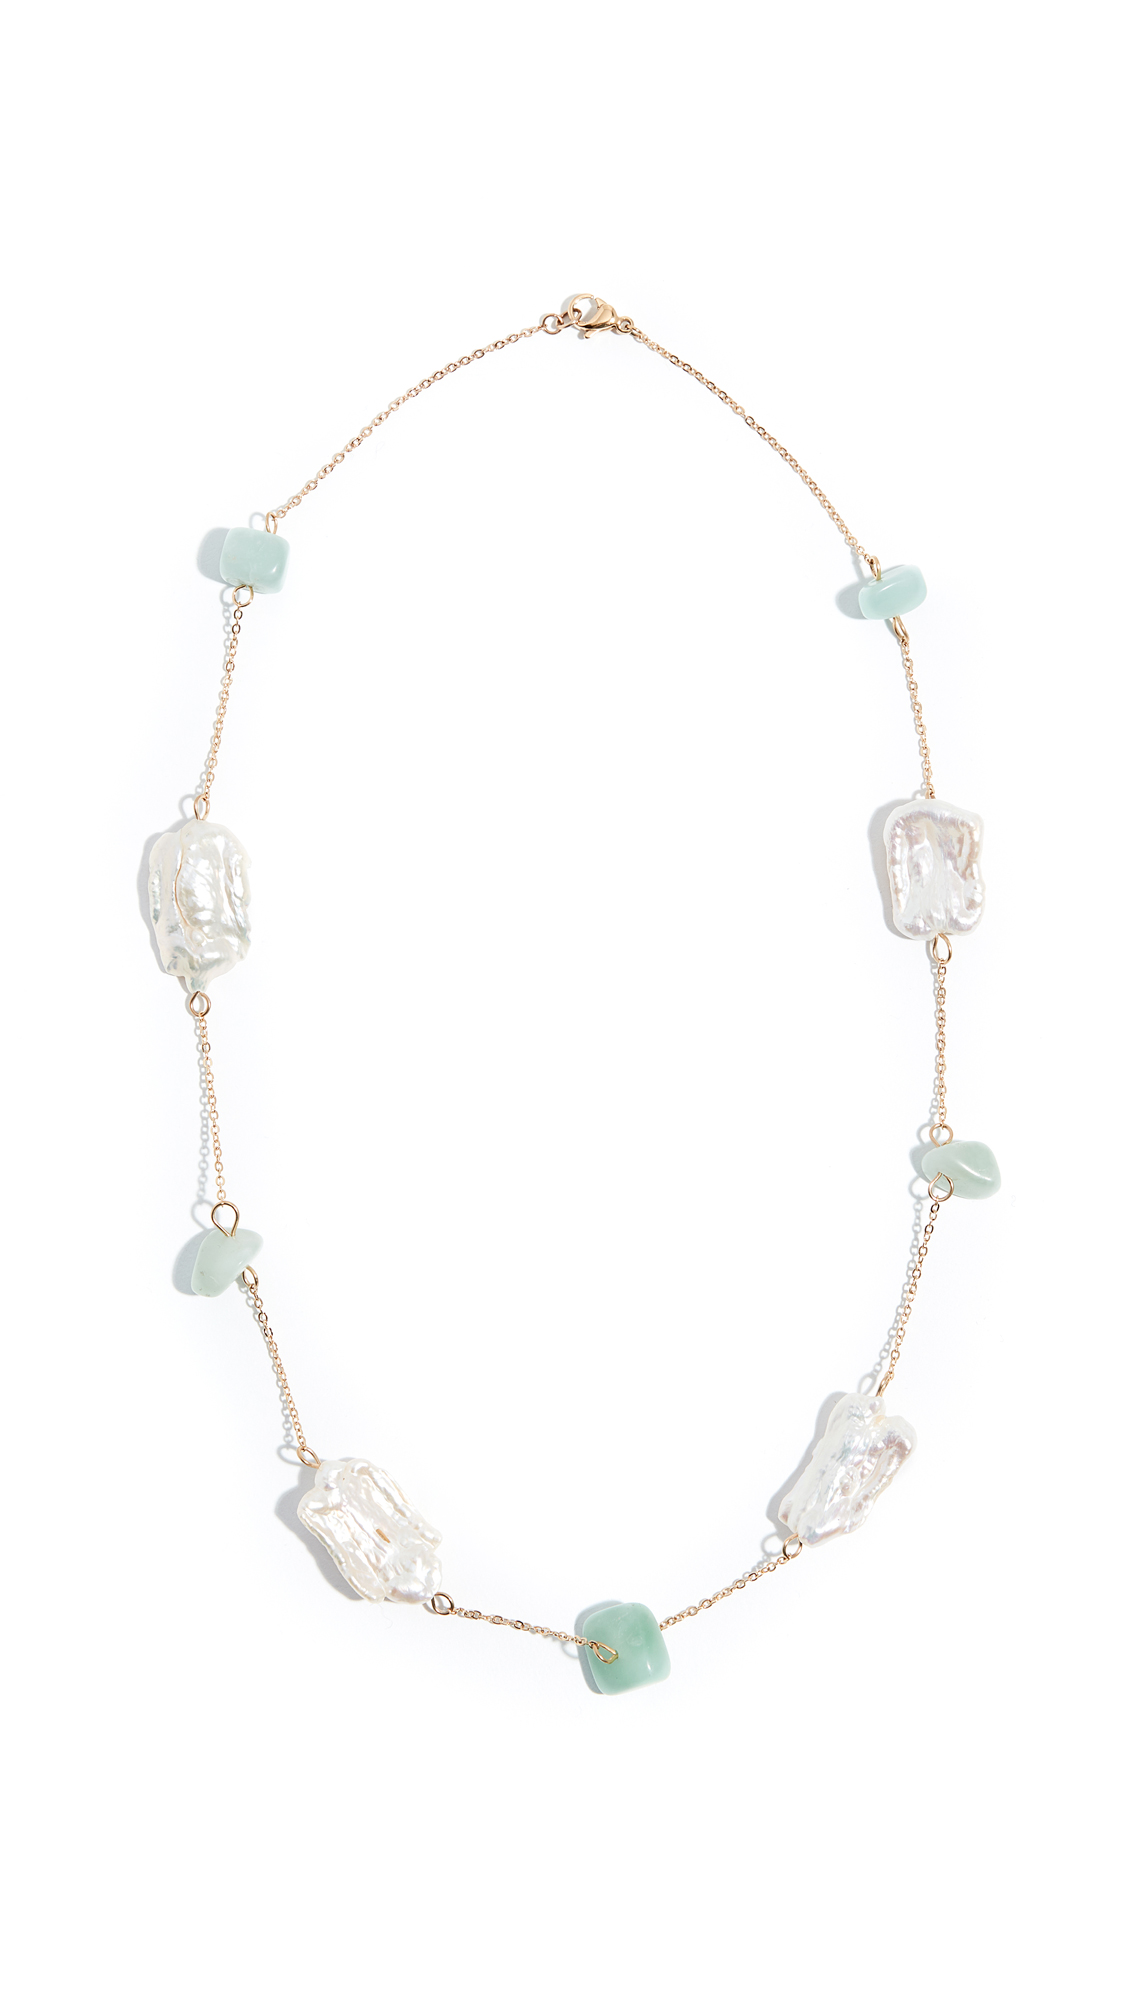 RELIQUIA Fantasy Necklace in Pearl/Green